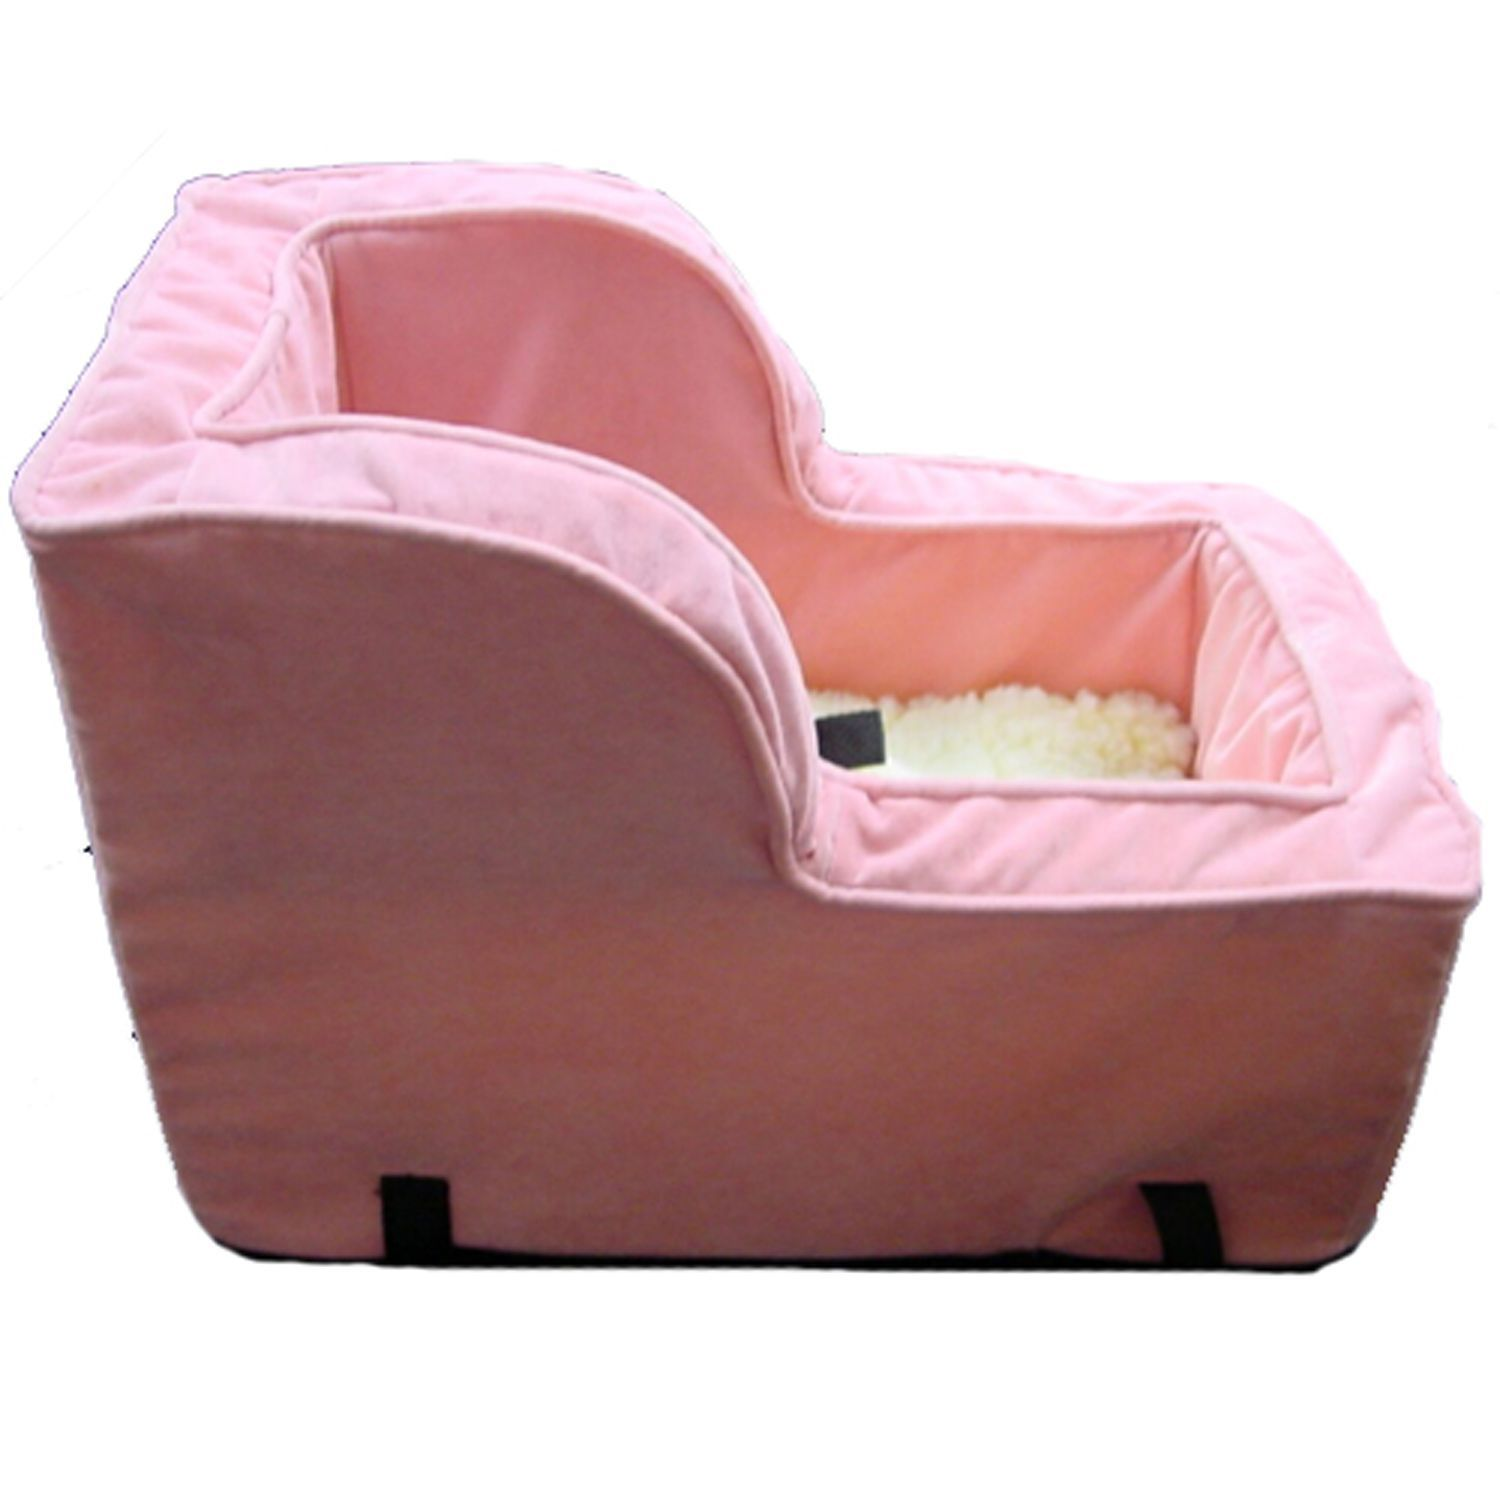 Snoozer High Back Console Pink Dog Car Seat (Large), Size M